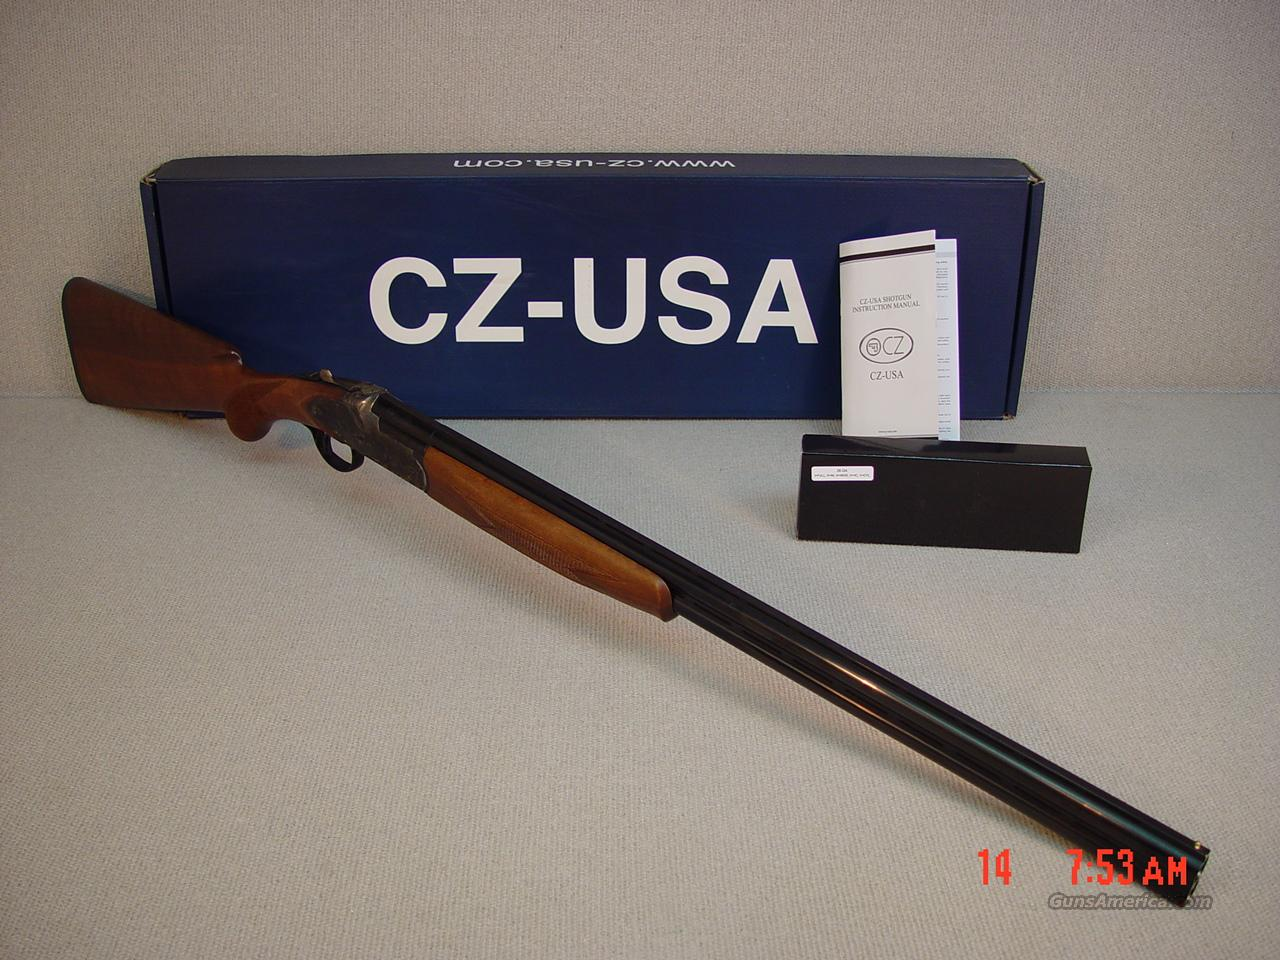 "CZ-USA WOODCOCK O/U 28GA 26""  Guns > Shotguns > CZ Shotguns"